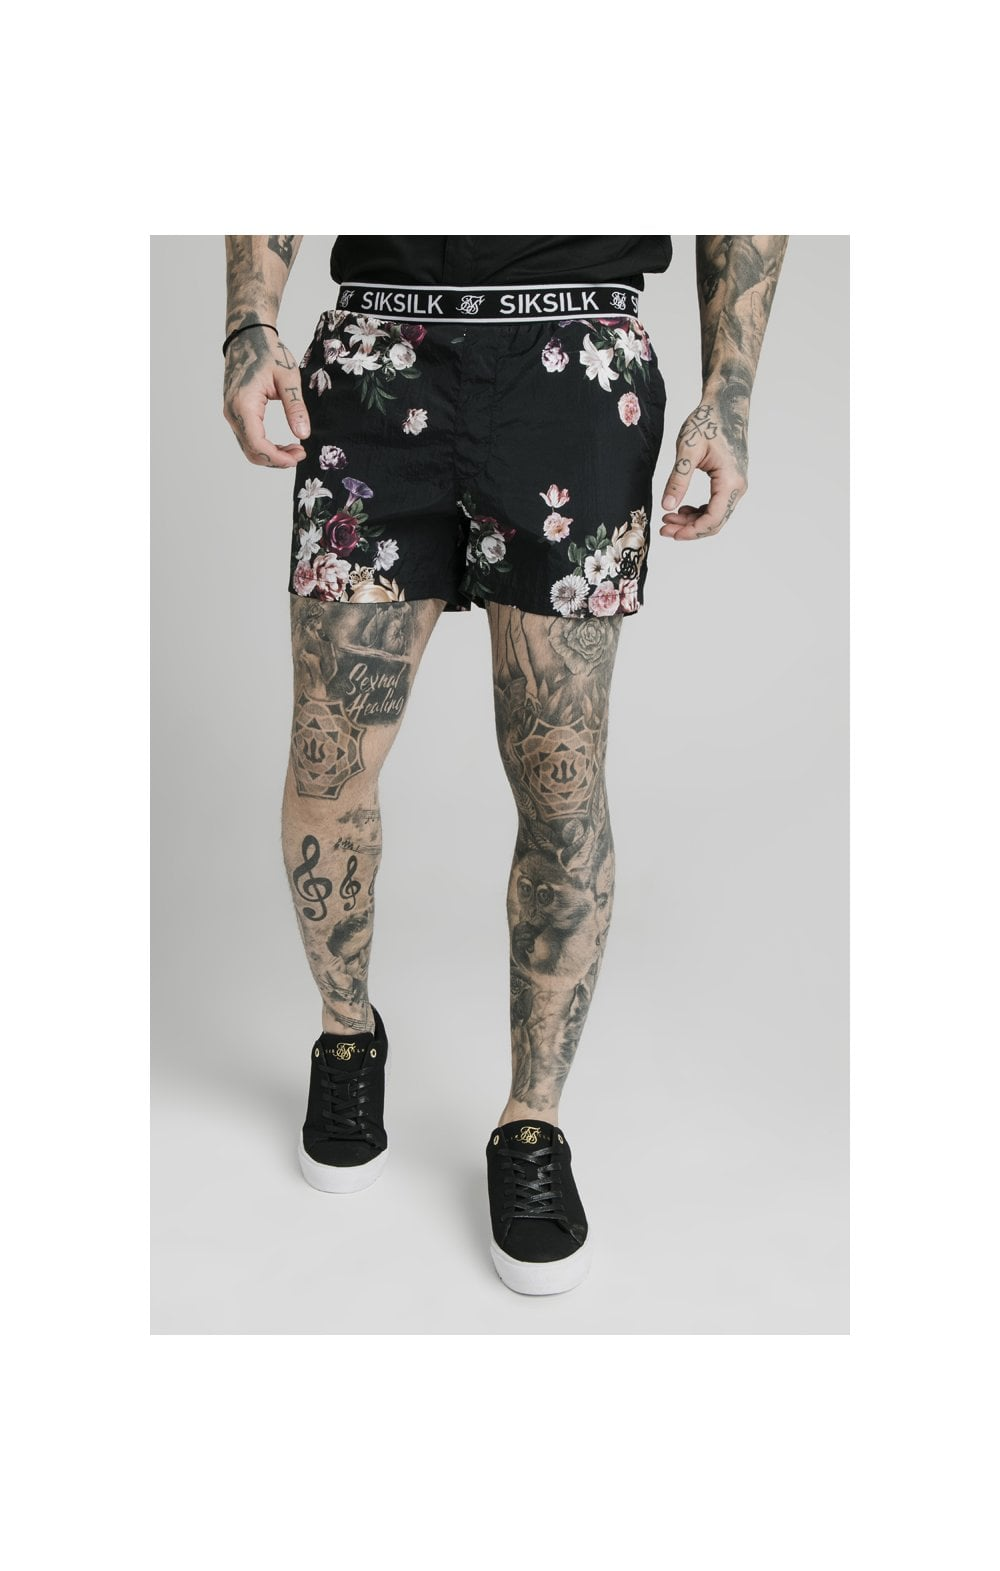 Load image into Gallery viewer, SikSilk Prestige Floral Swim Shorts - Black